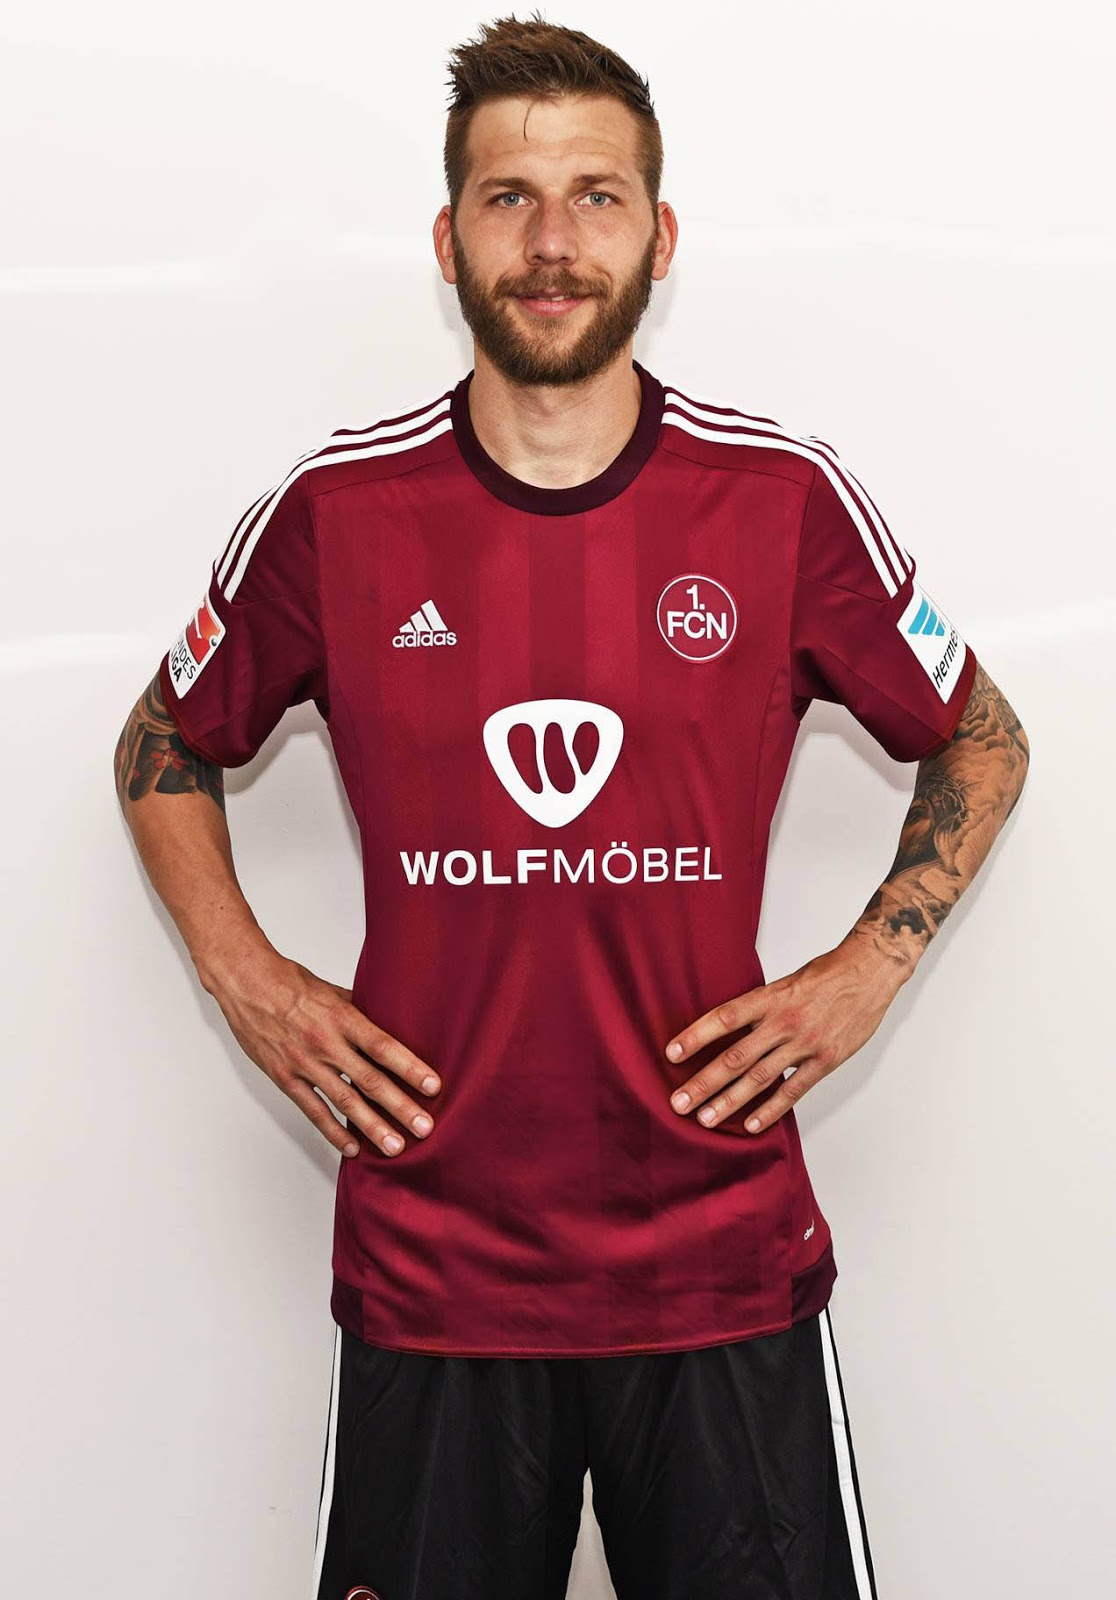 Adidas 1. FC Nürnberg 15 16 Home Kit Released   Footy Headlines